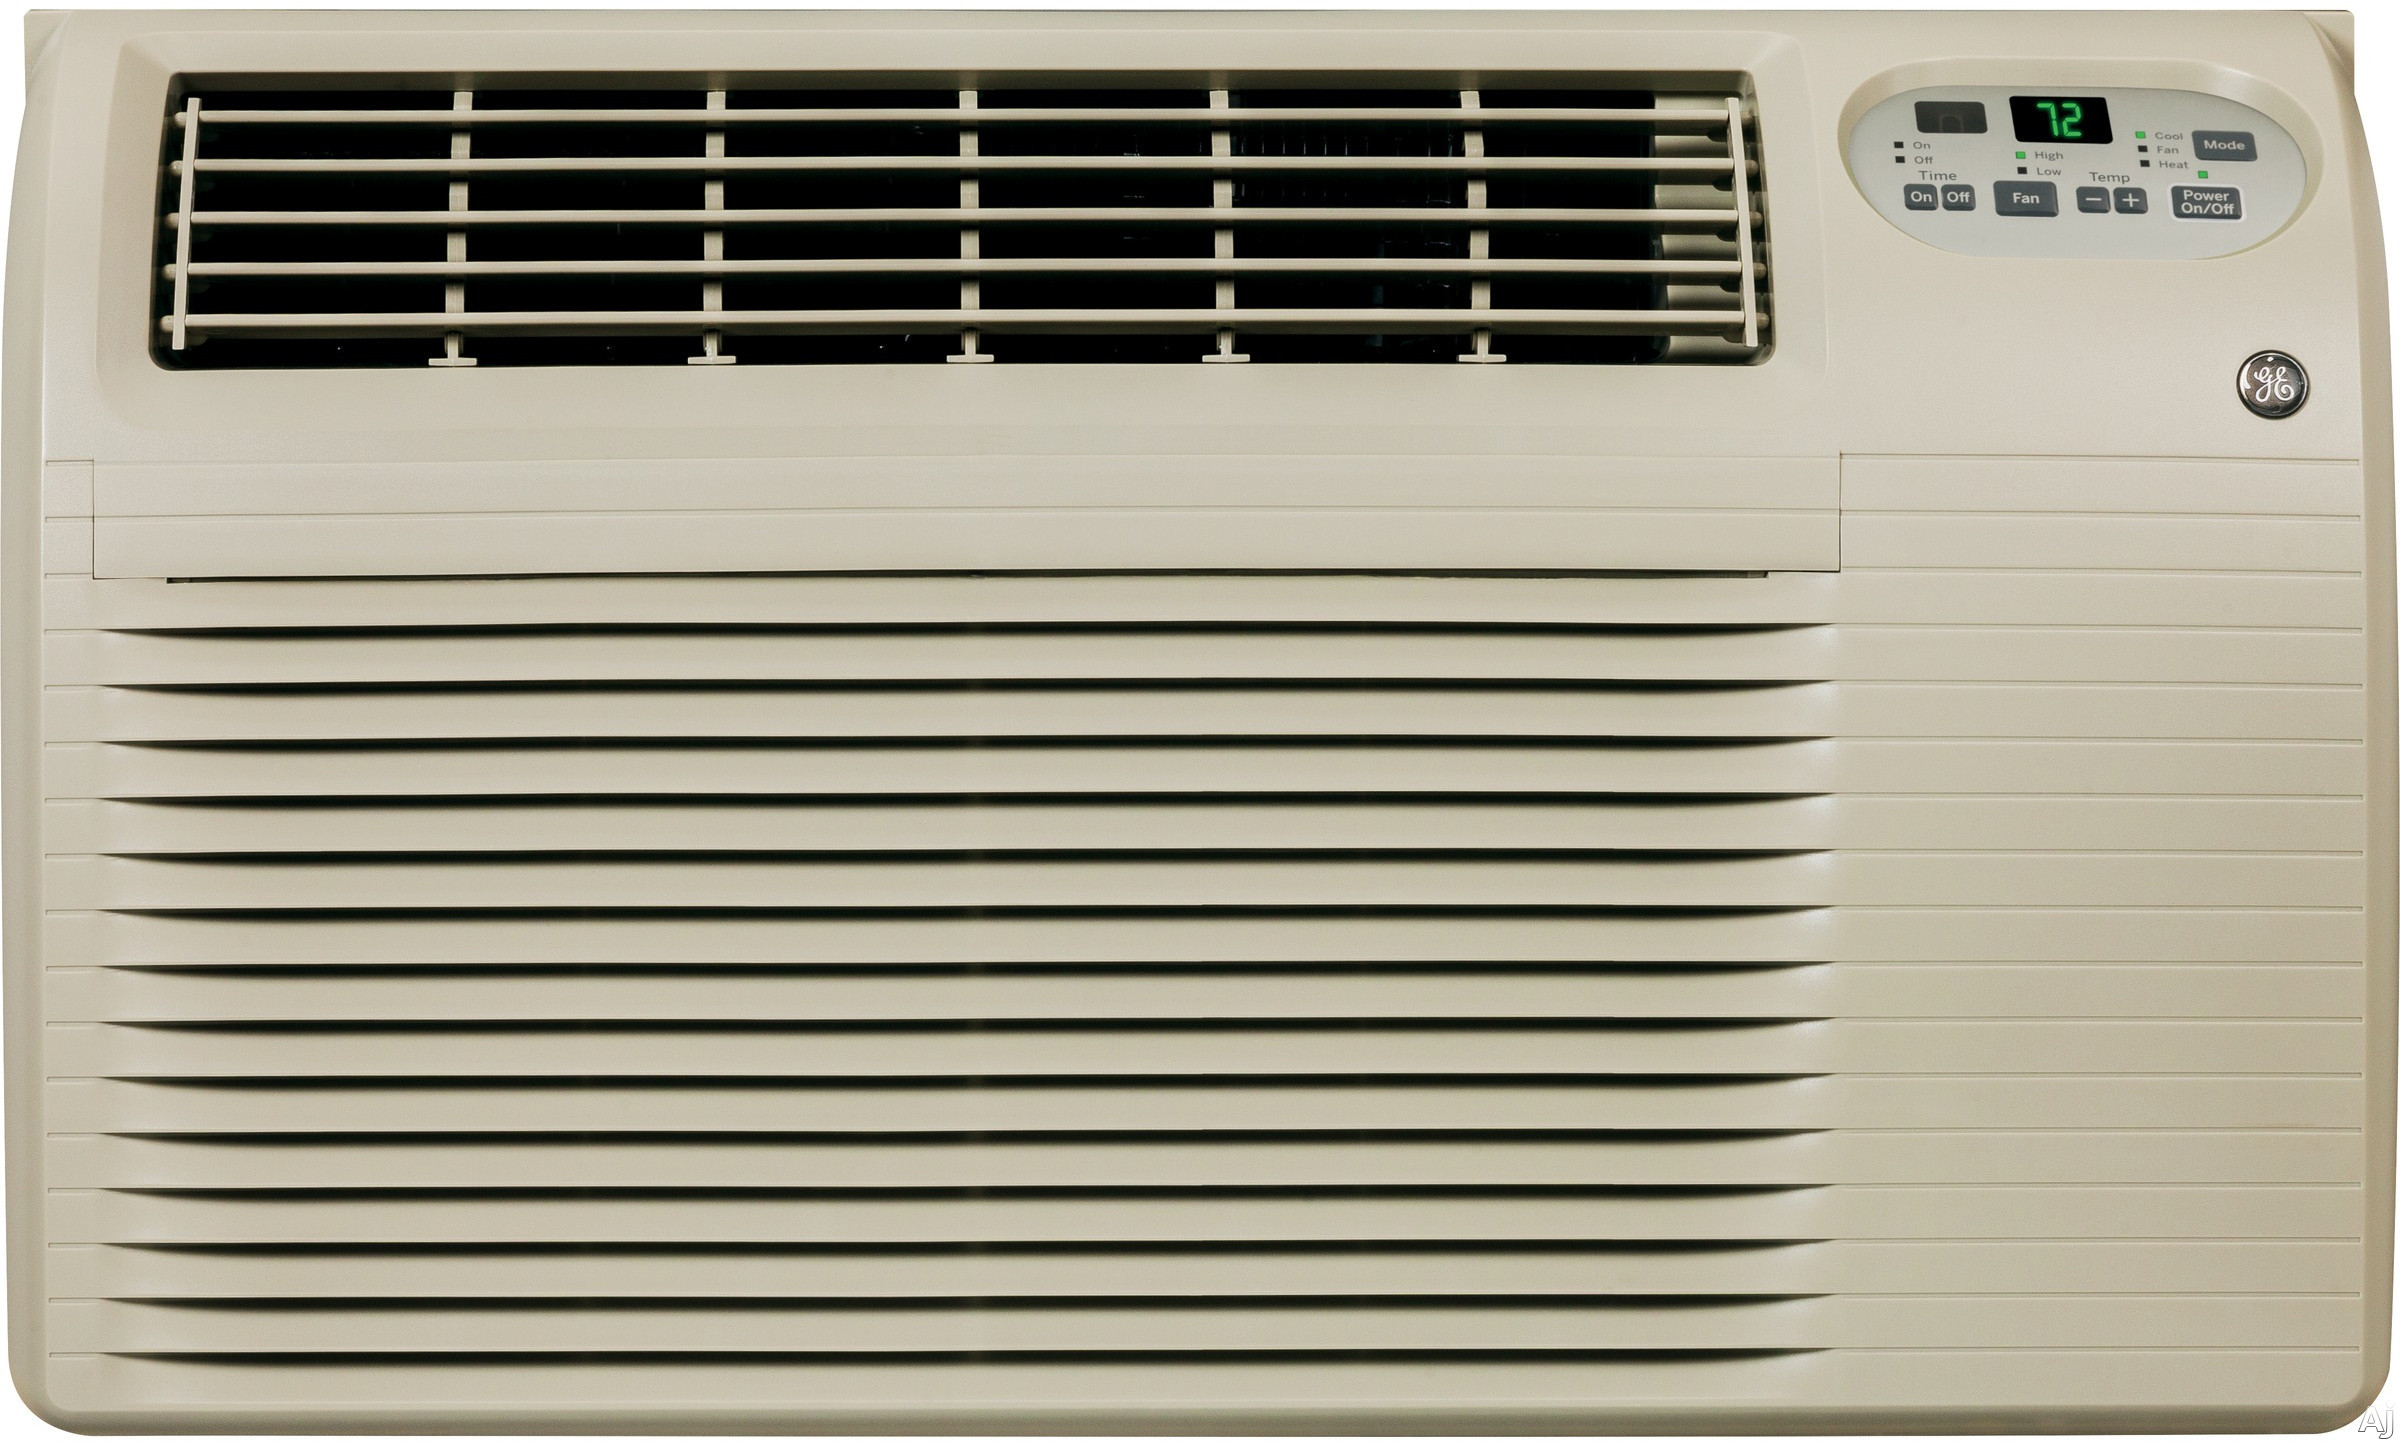 GE AJEQ08ACF 8,200 BTU Thru-the-Wall Air Conditioner with 3,900 BTU Electric Heat, 10.0 EER, R-410A Refrigerant, 1.9 Pts/Hr Dehumidification, ADA Compliant, 24 Hour Timer and Remote Control AJEQ08ACF